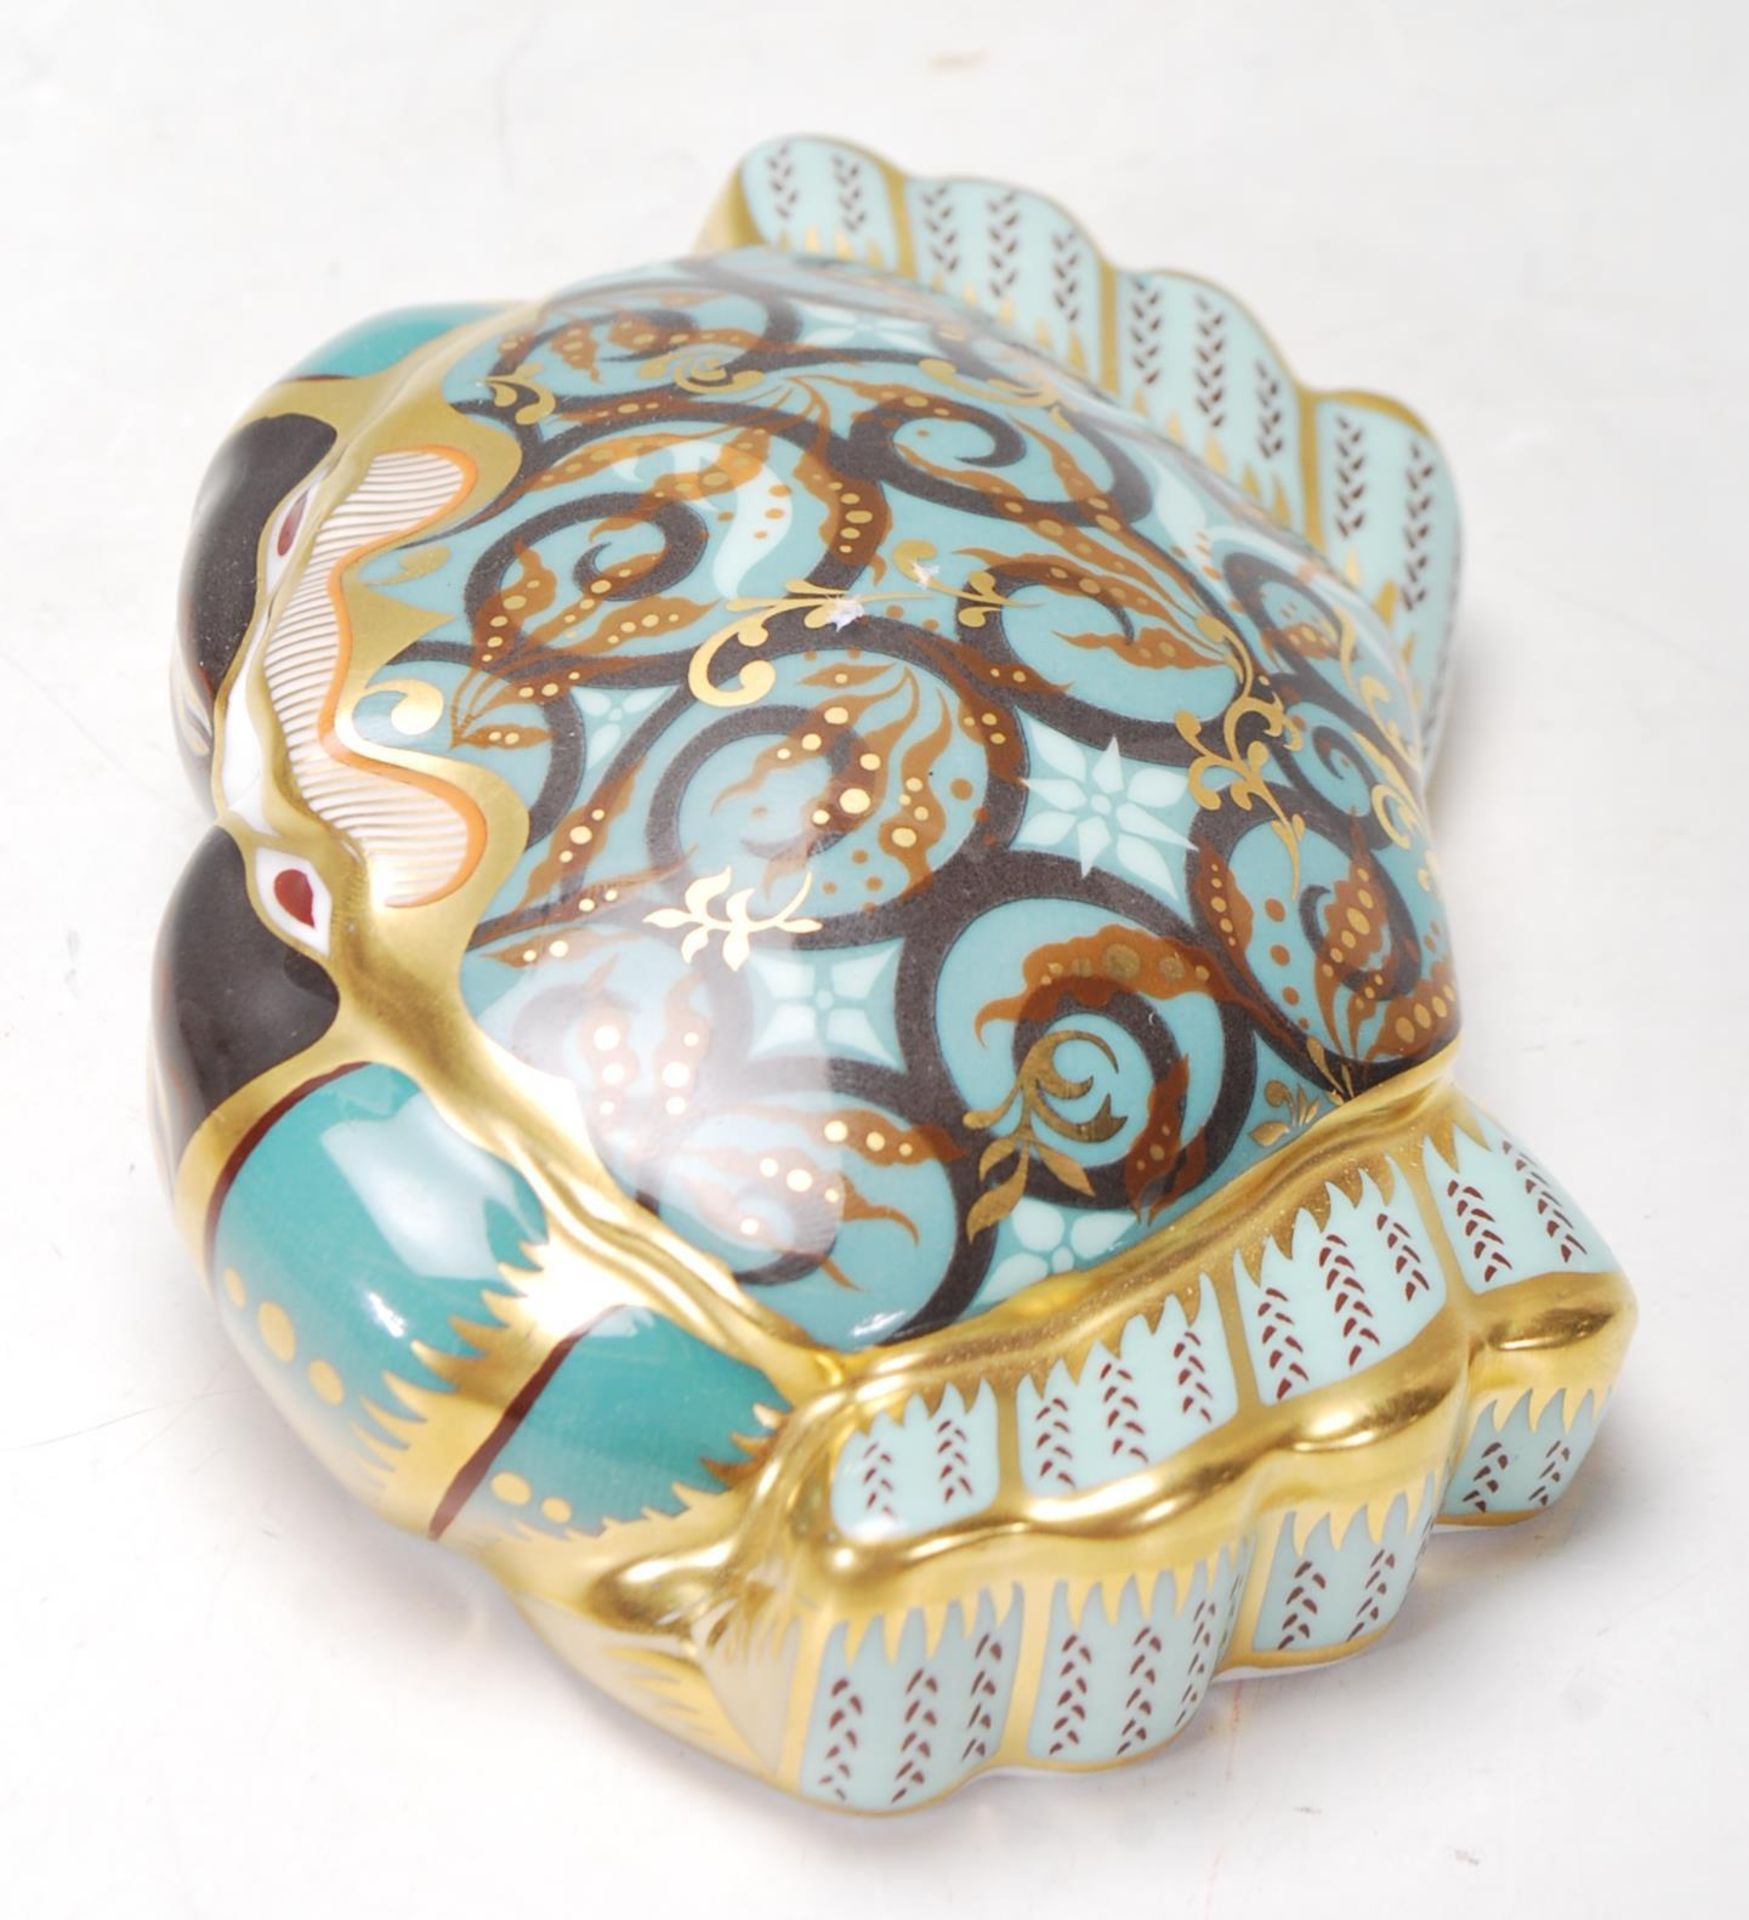 ROYAL CROWN DERBY PAPERWEIGHT IN A FORM OF A CROMER CRAB WITH GOLD STOPPER - Image 5 of 6